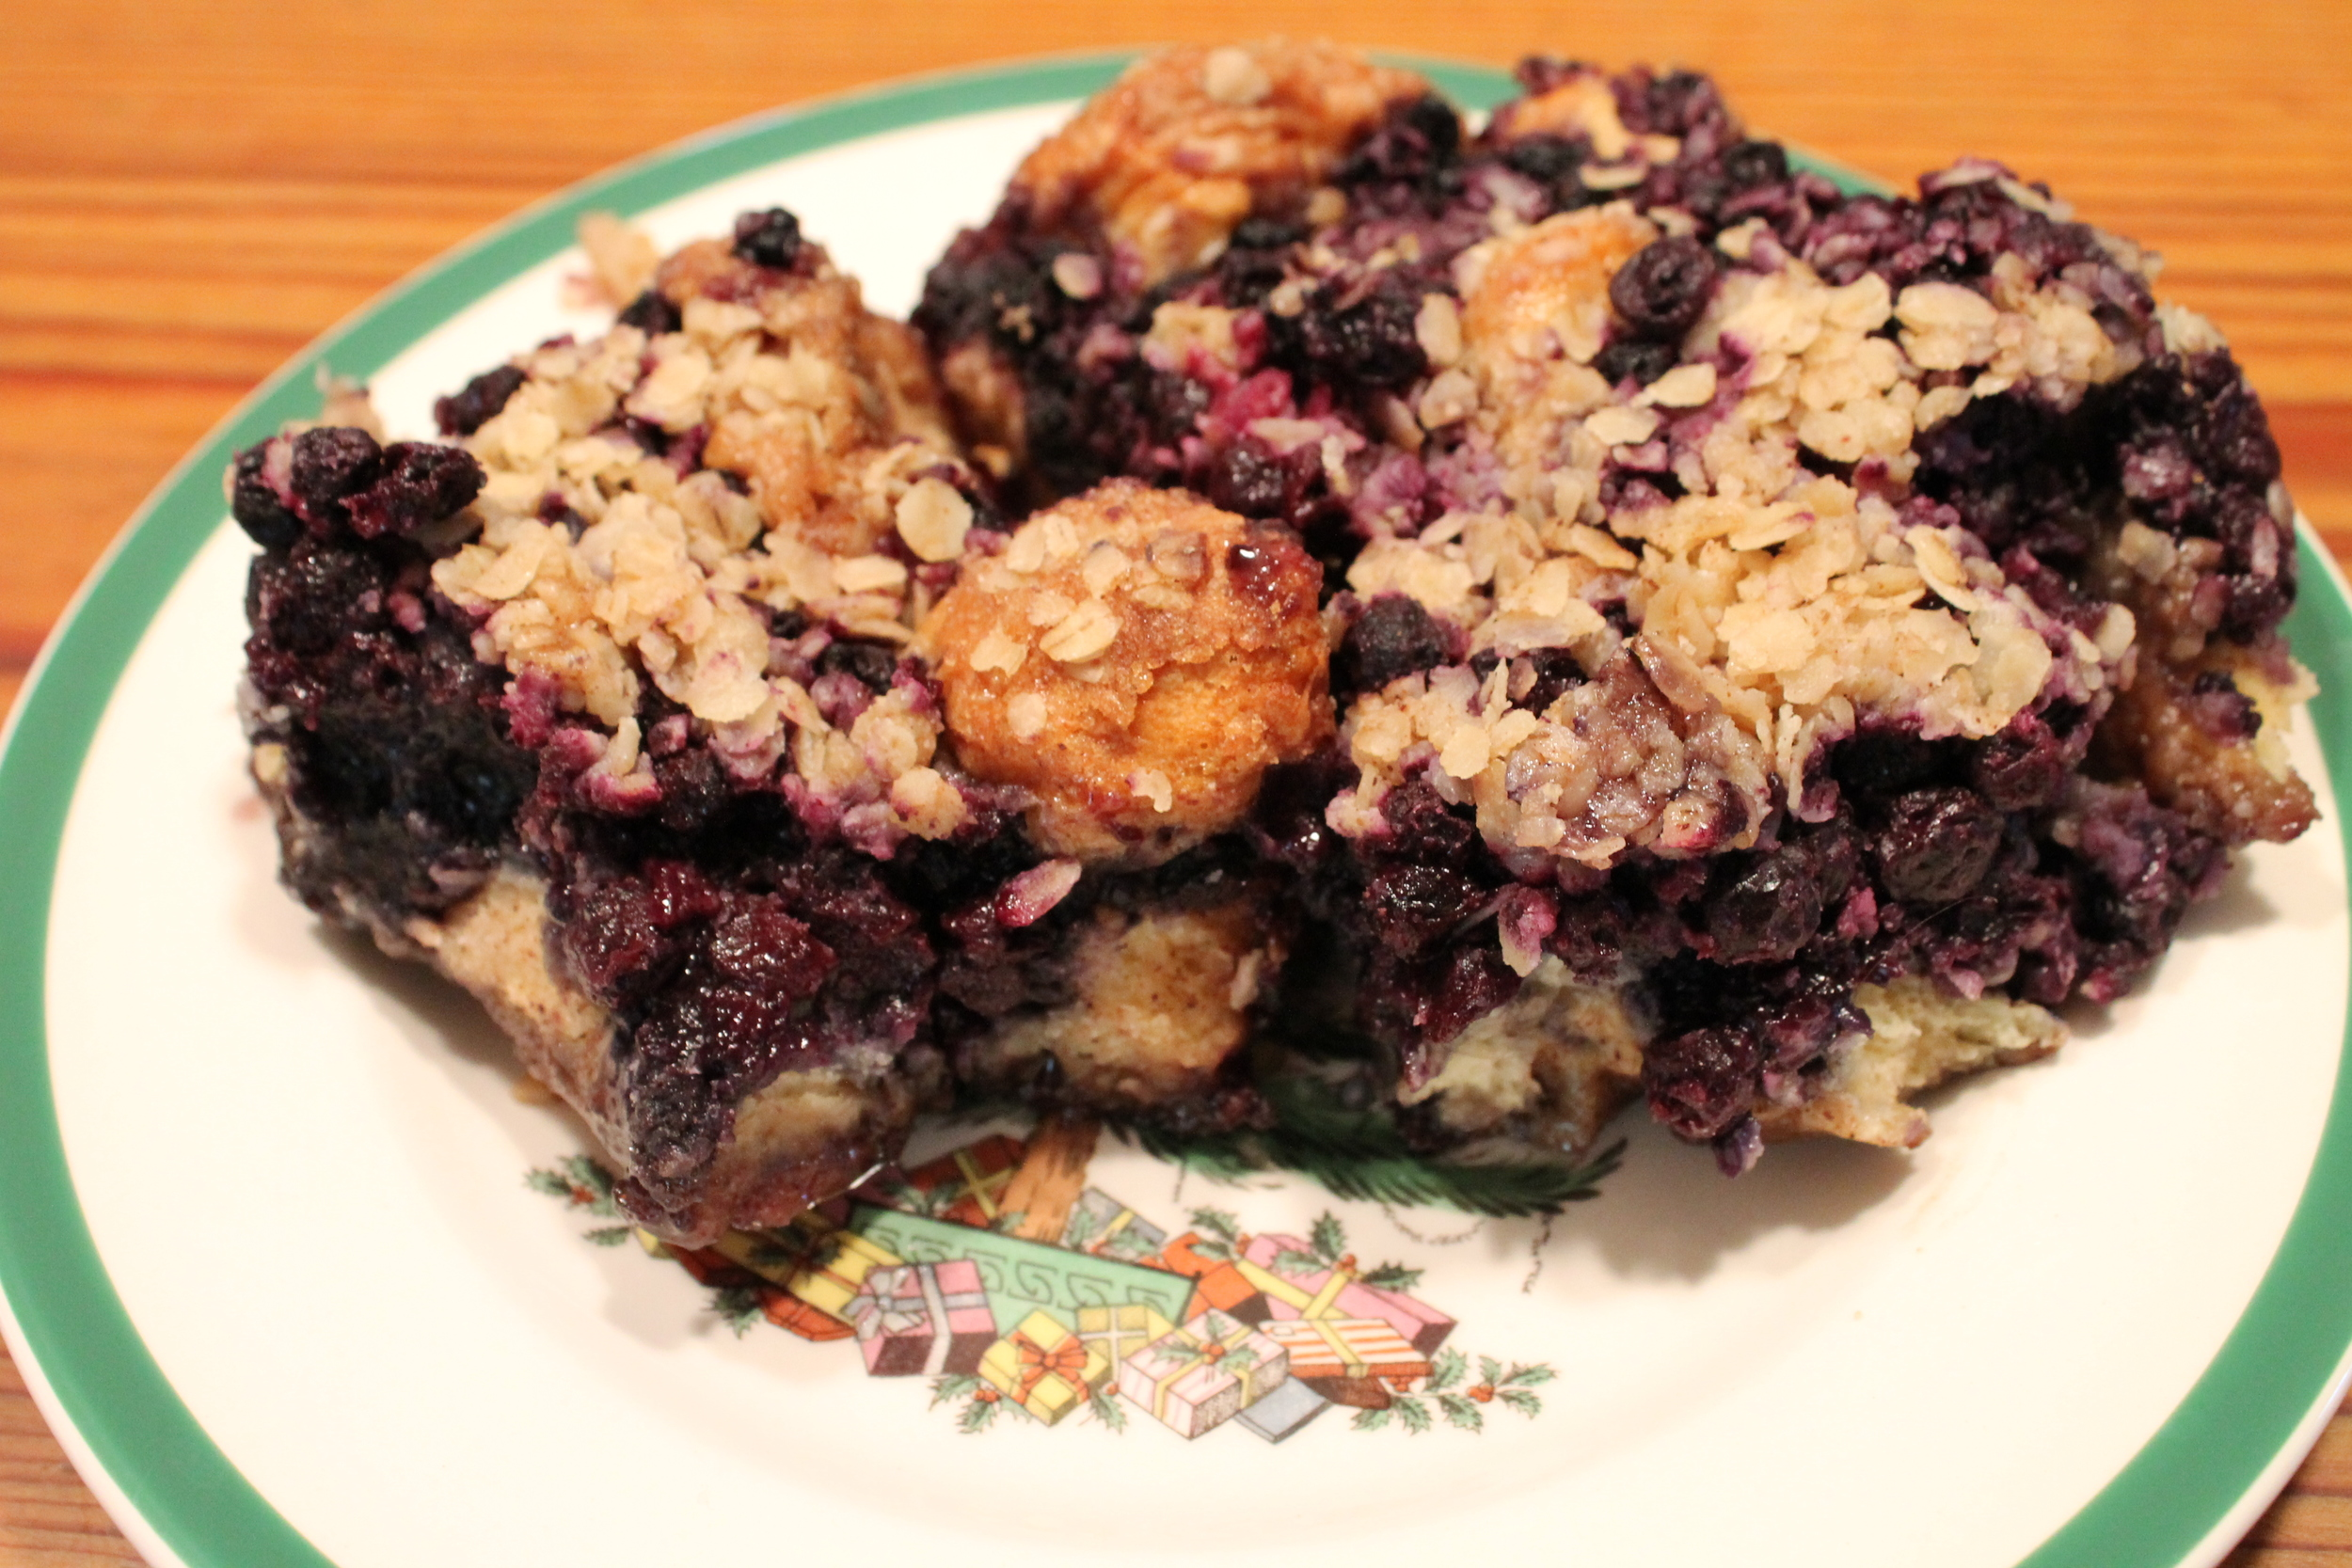 blueberry and biscuit coffee cake